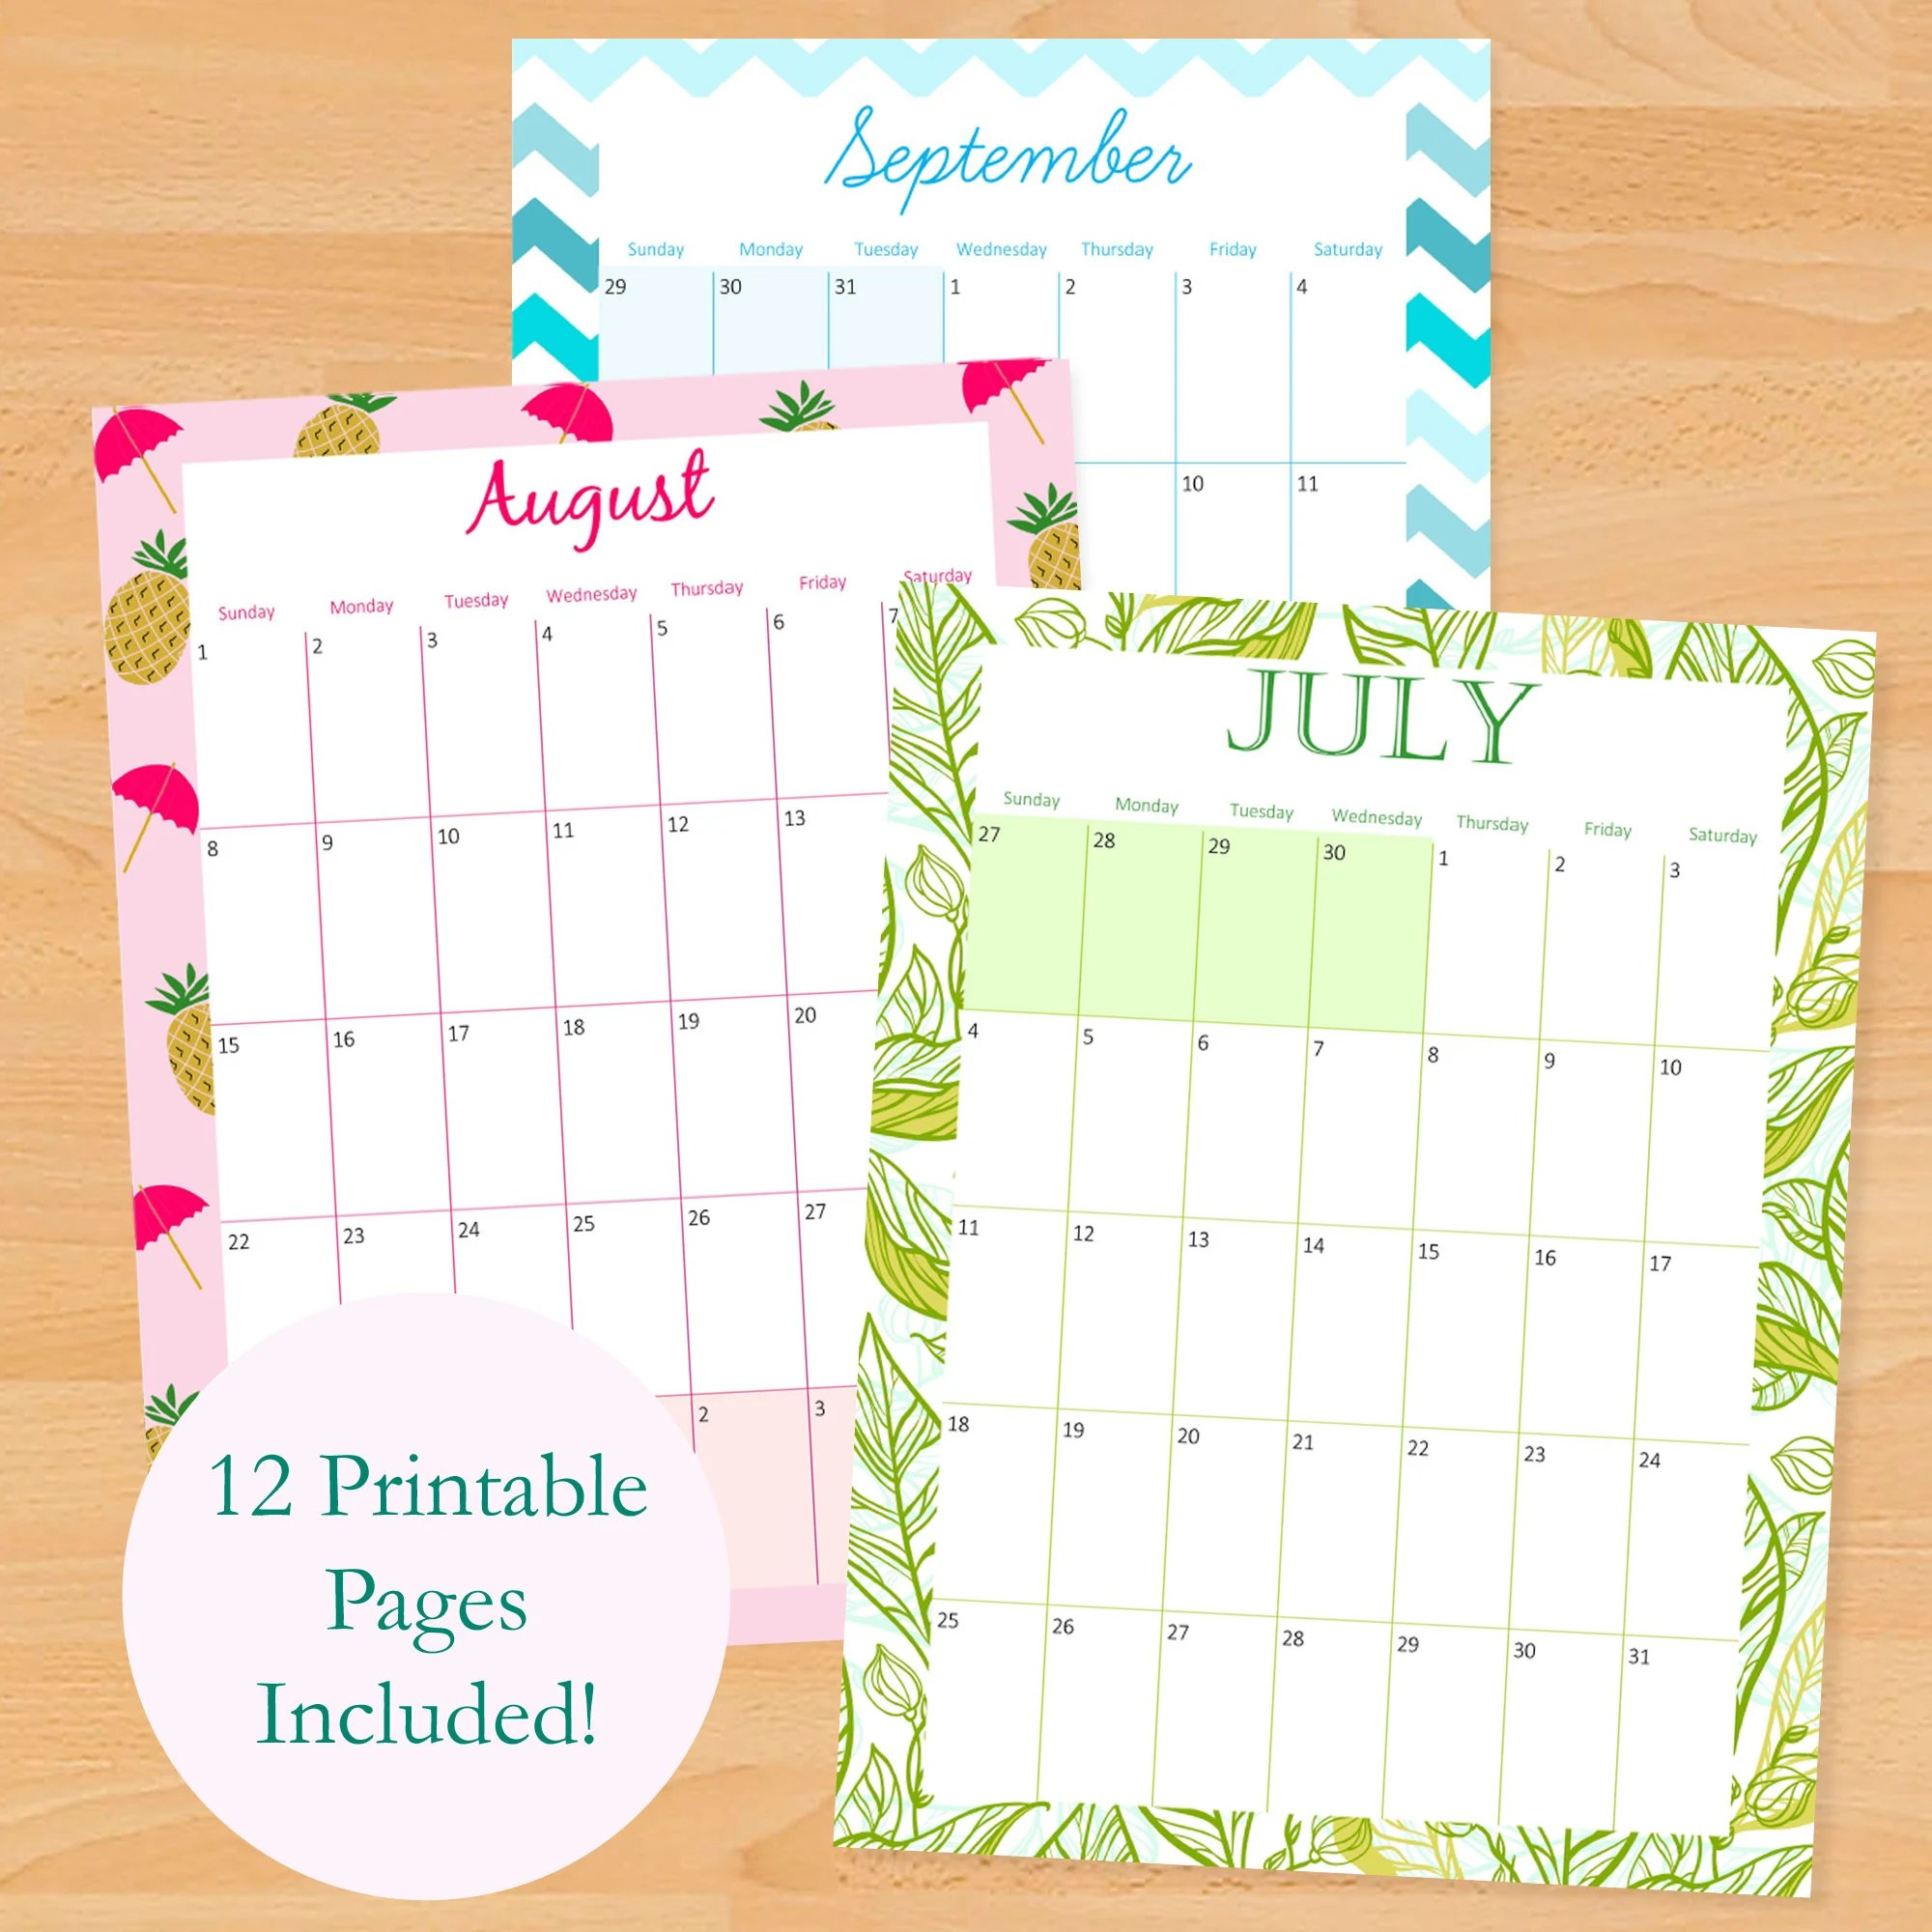 Please note that all the freebies are for personal use only and should not be distributed by any means. 2021 2022 Printable Monthly Calendar 2021 2022 Printable ...